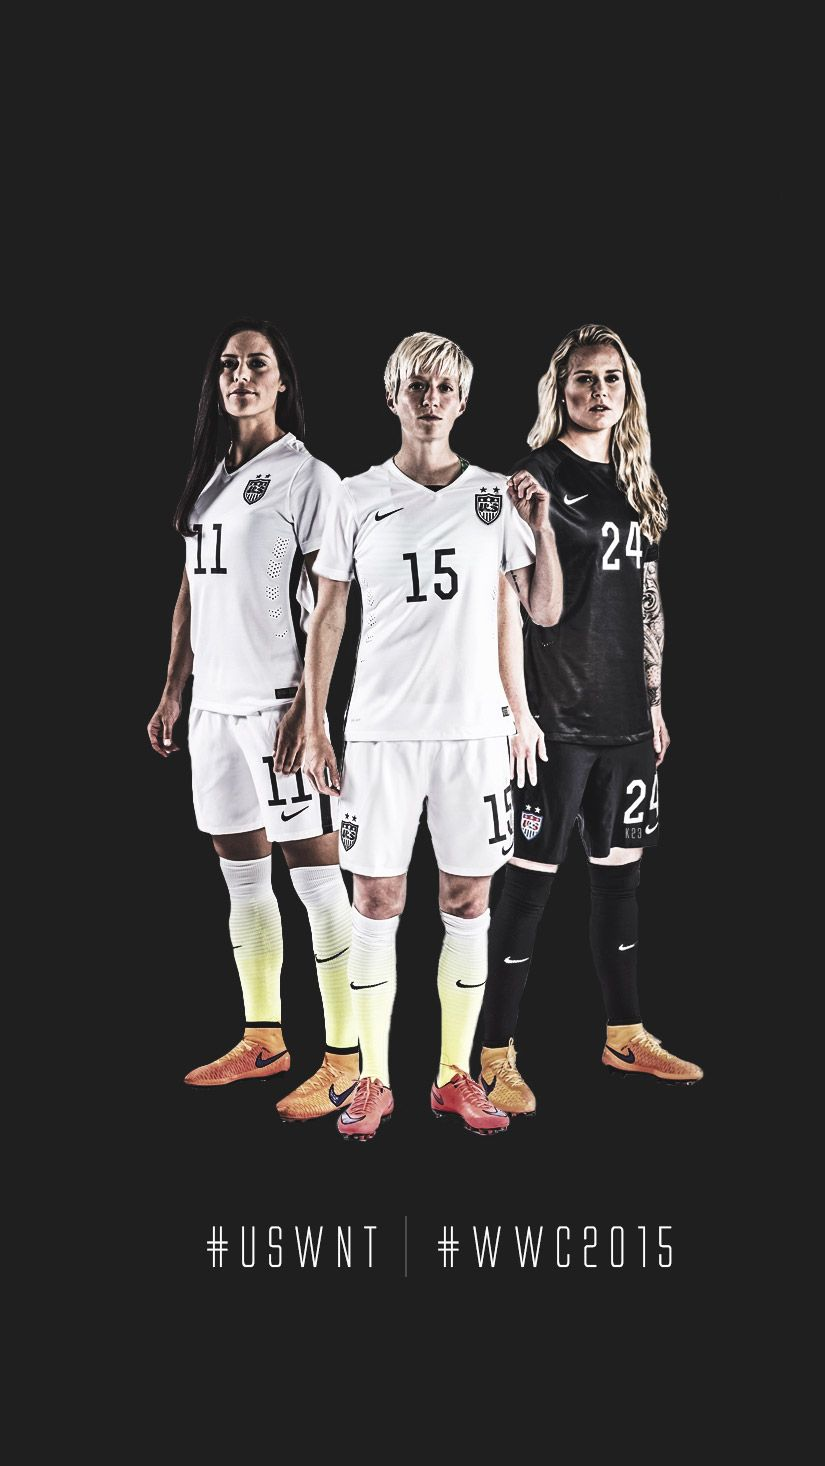 Uswnt iphone wallpaper tumblr - Womens World Cup 2015 I Will Be Glued To The Television Deana Was Of